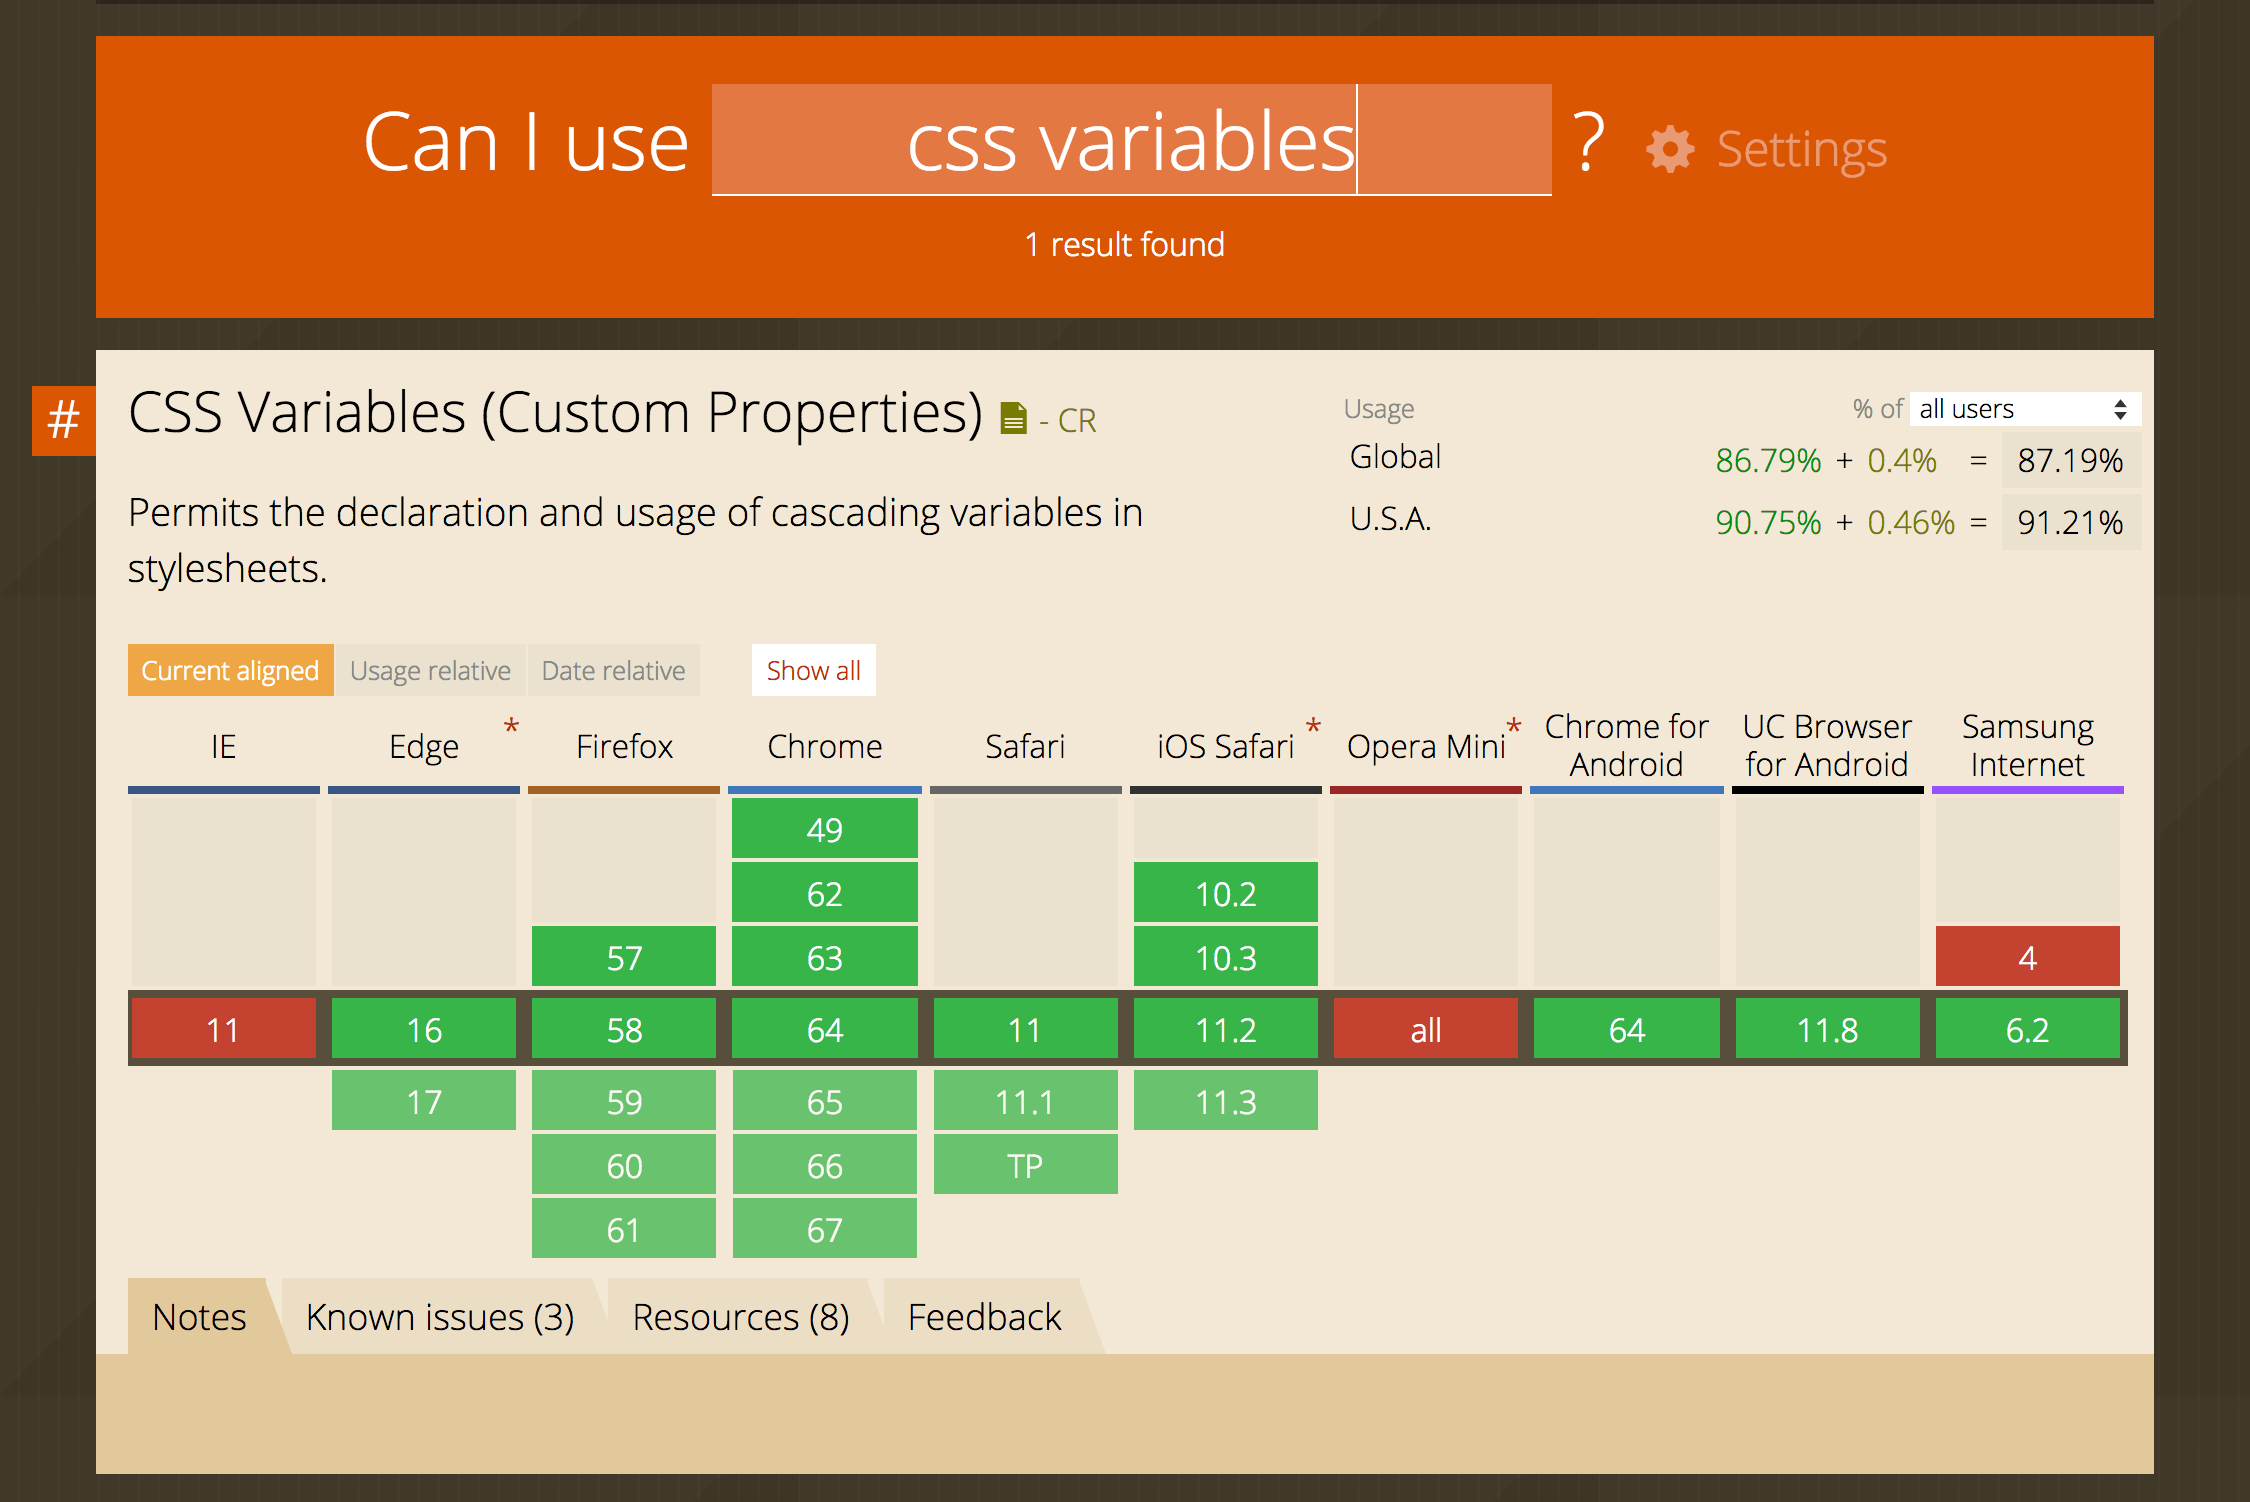 CanIUse.com screenshot showing global support for custom CSS properties (CSS variables) at around 90%